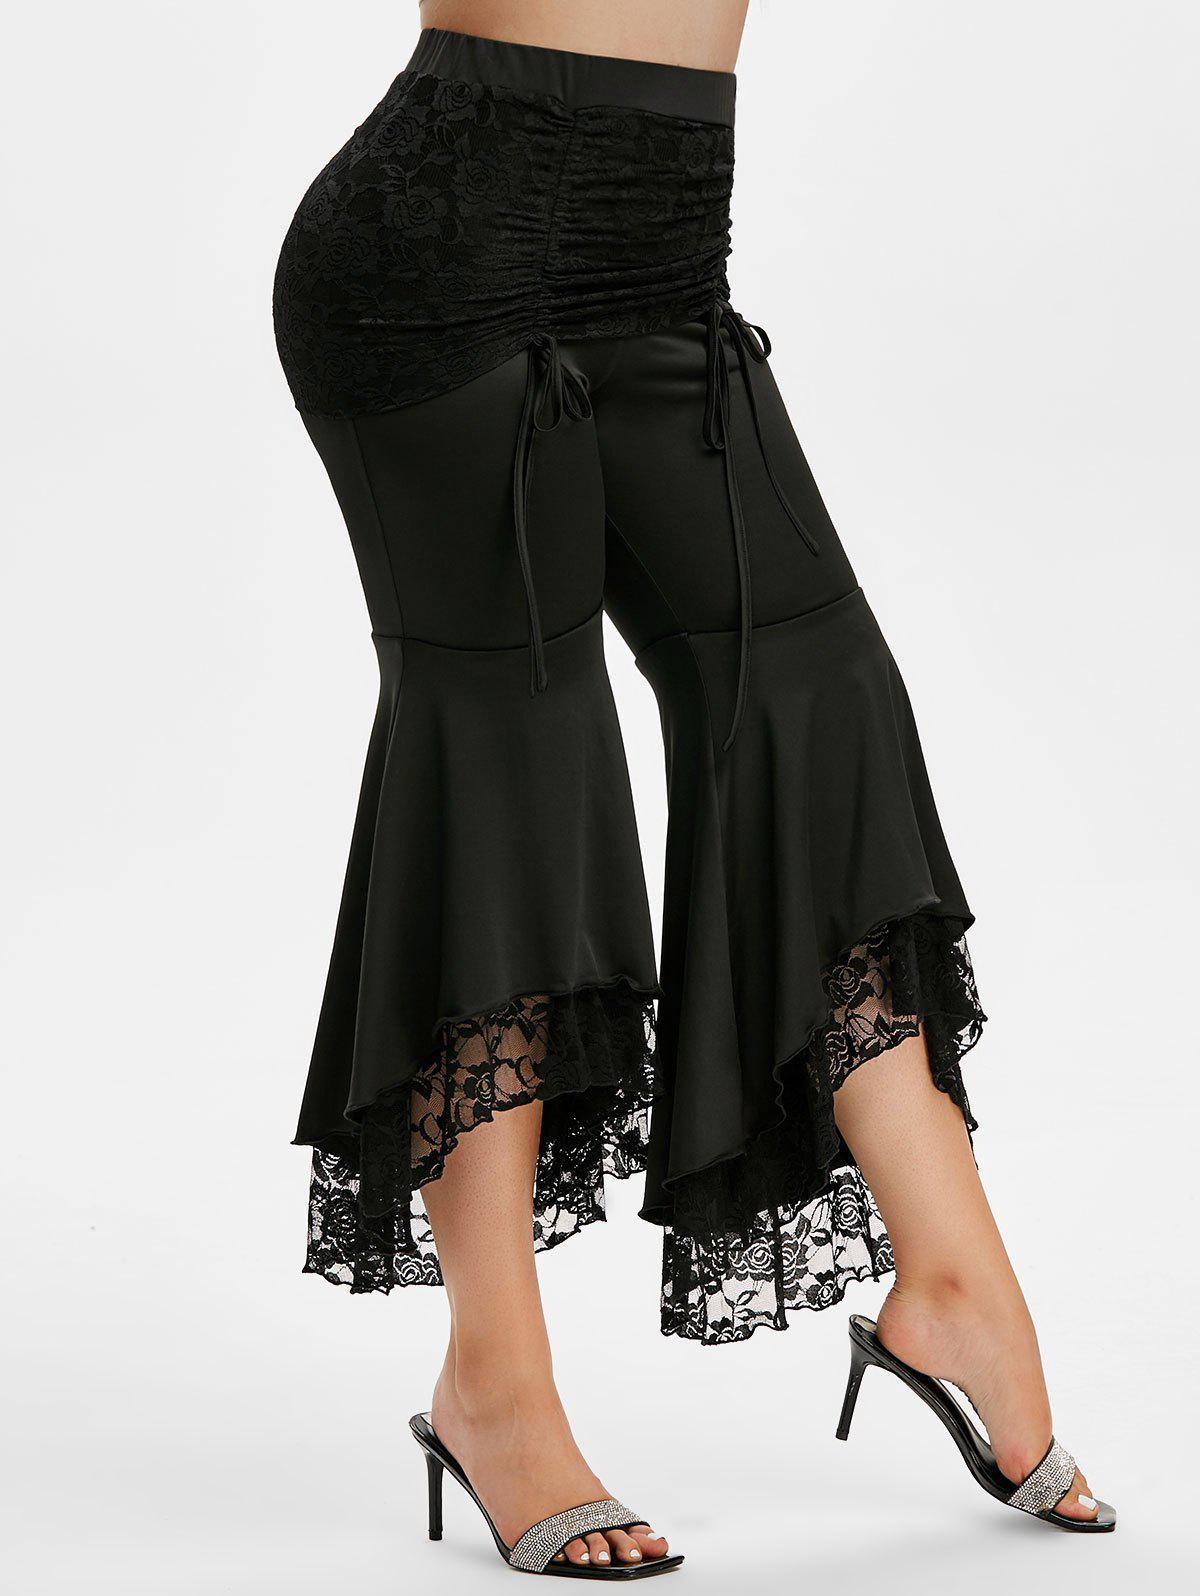 Plus Size High Rise Lace Insert Flare Pants - BLACK 5X